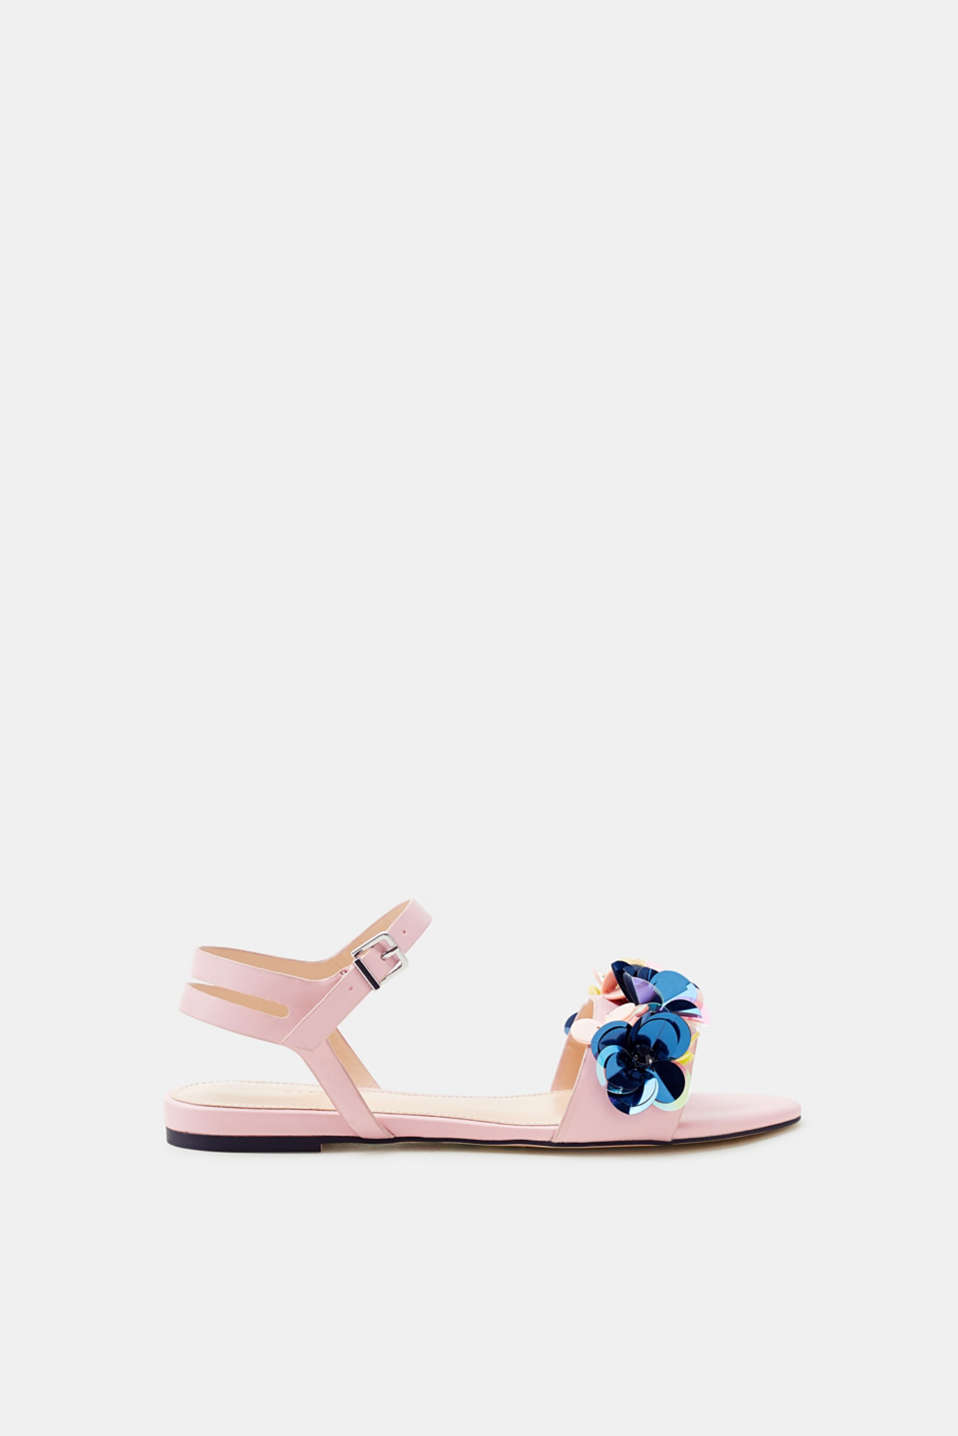 Esprit - Sandals with sequins arranged in a floral style